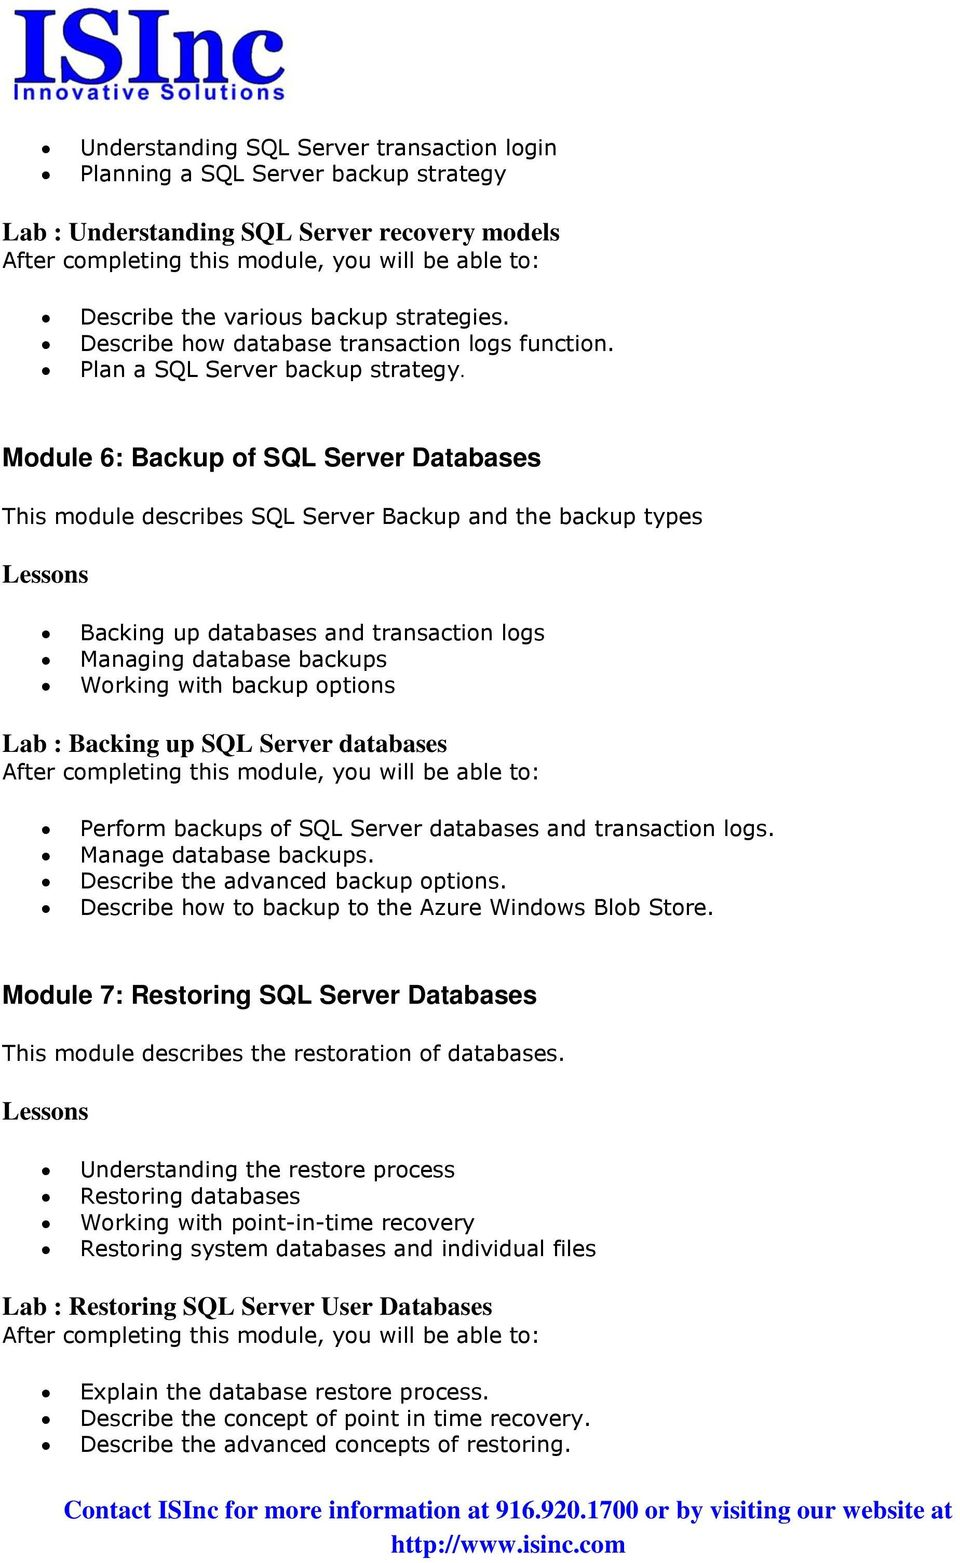 Module 6: Backup of SQL Server Databases This module describes SQL Server Backup and the backup types Backing up databases and transaction logs Managing database backups Working with backup options